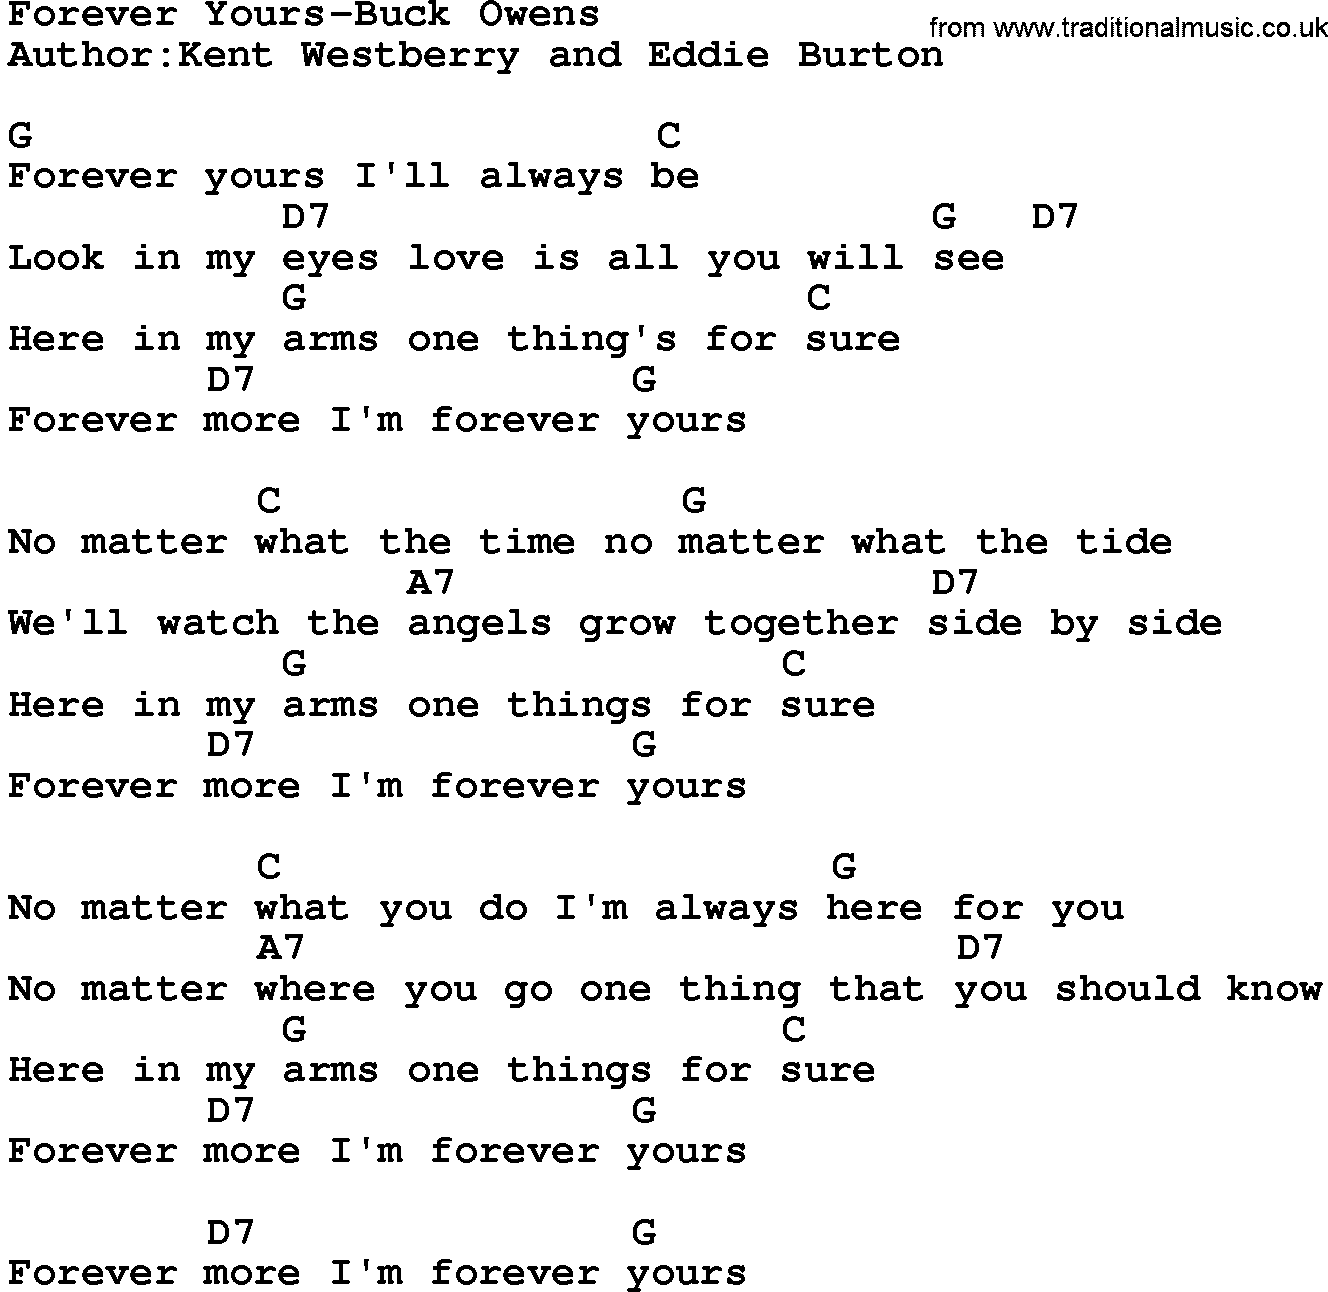 Country Music:Forever Yours-Buck Owens Lyrics And Chords